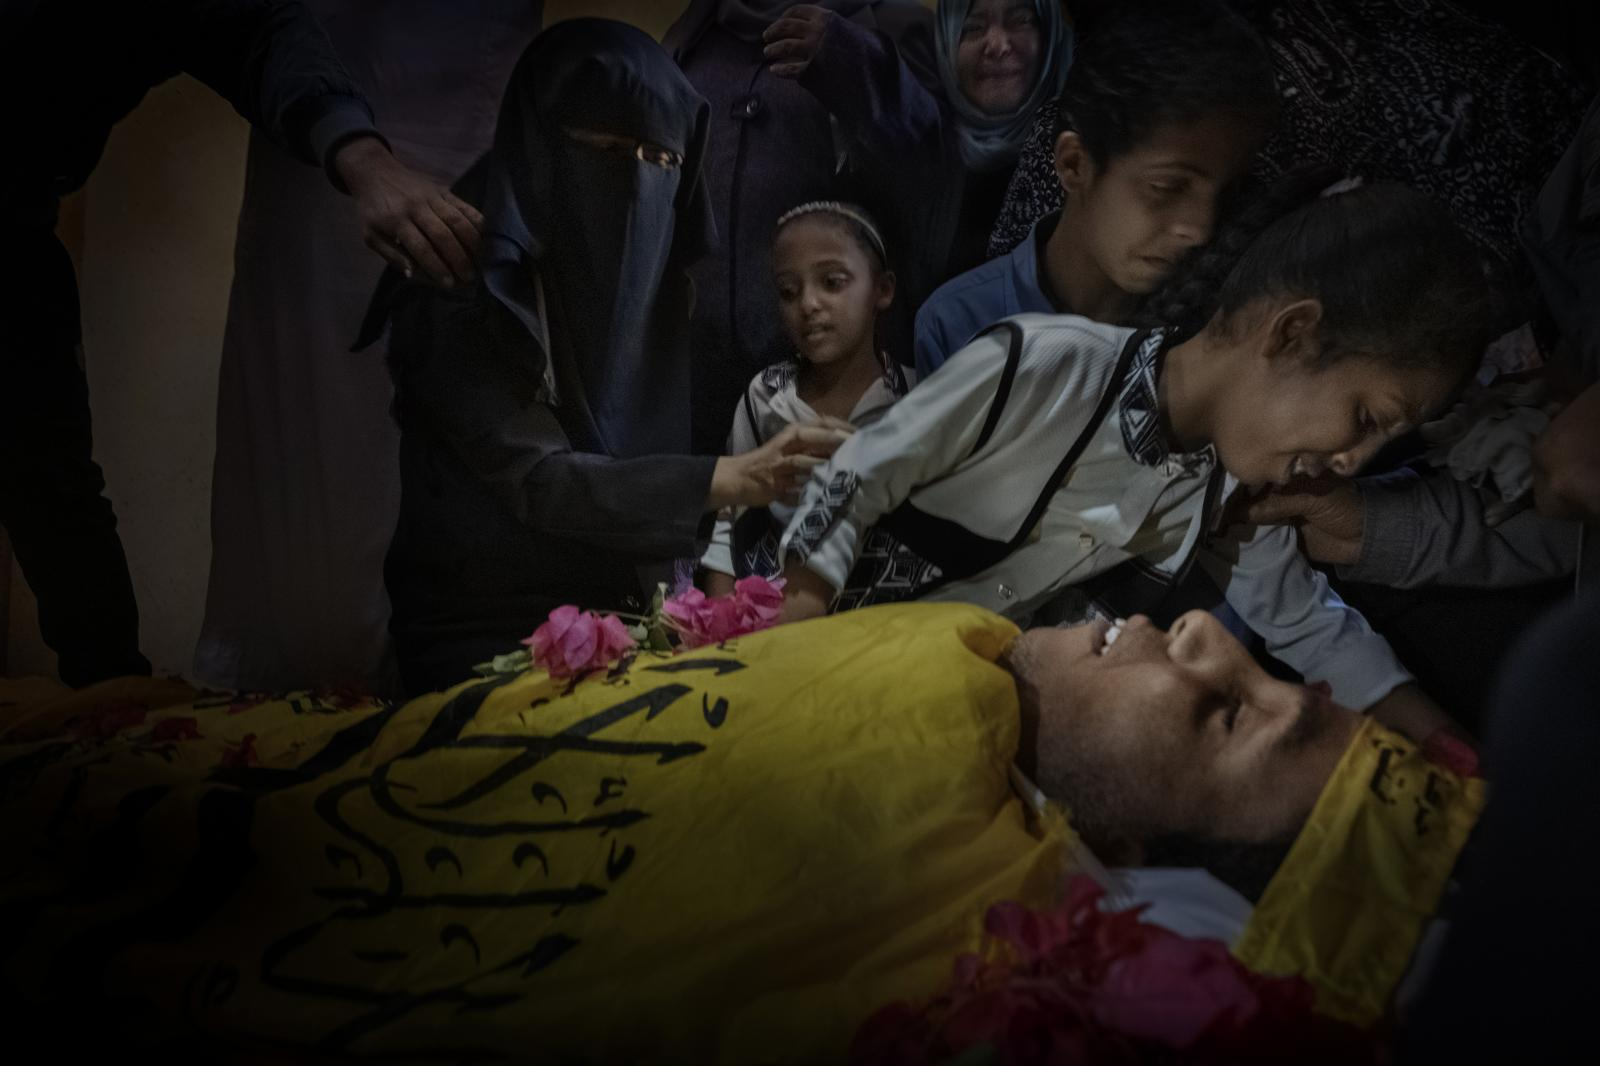 One of the daughters of PalestinianYahya Hasanat, 37, cries over his death caused by shots fired by Israeli troops during the Great March protests (Gaza).